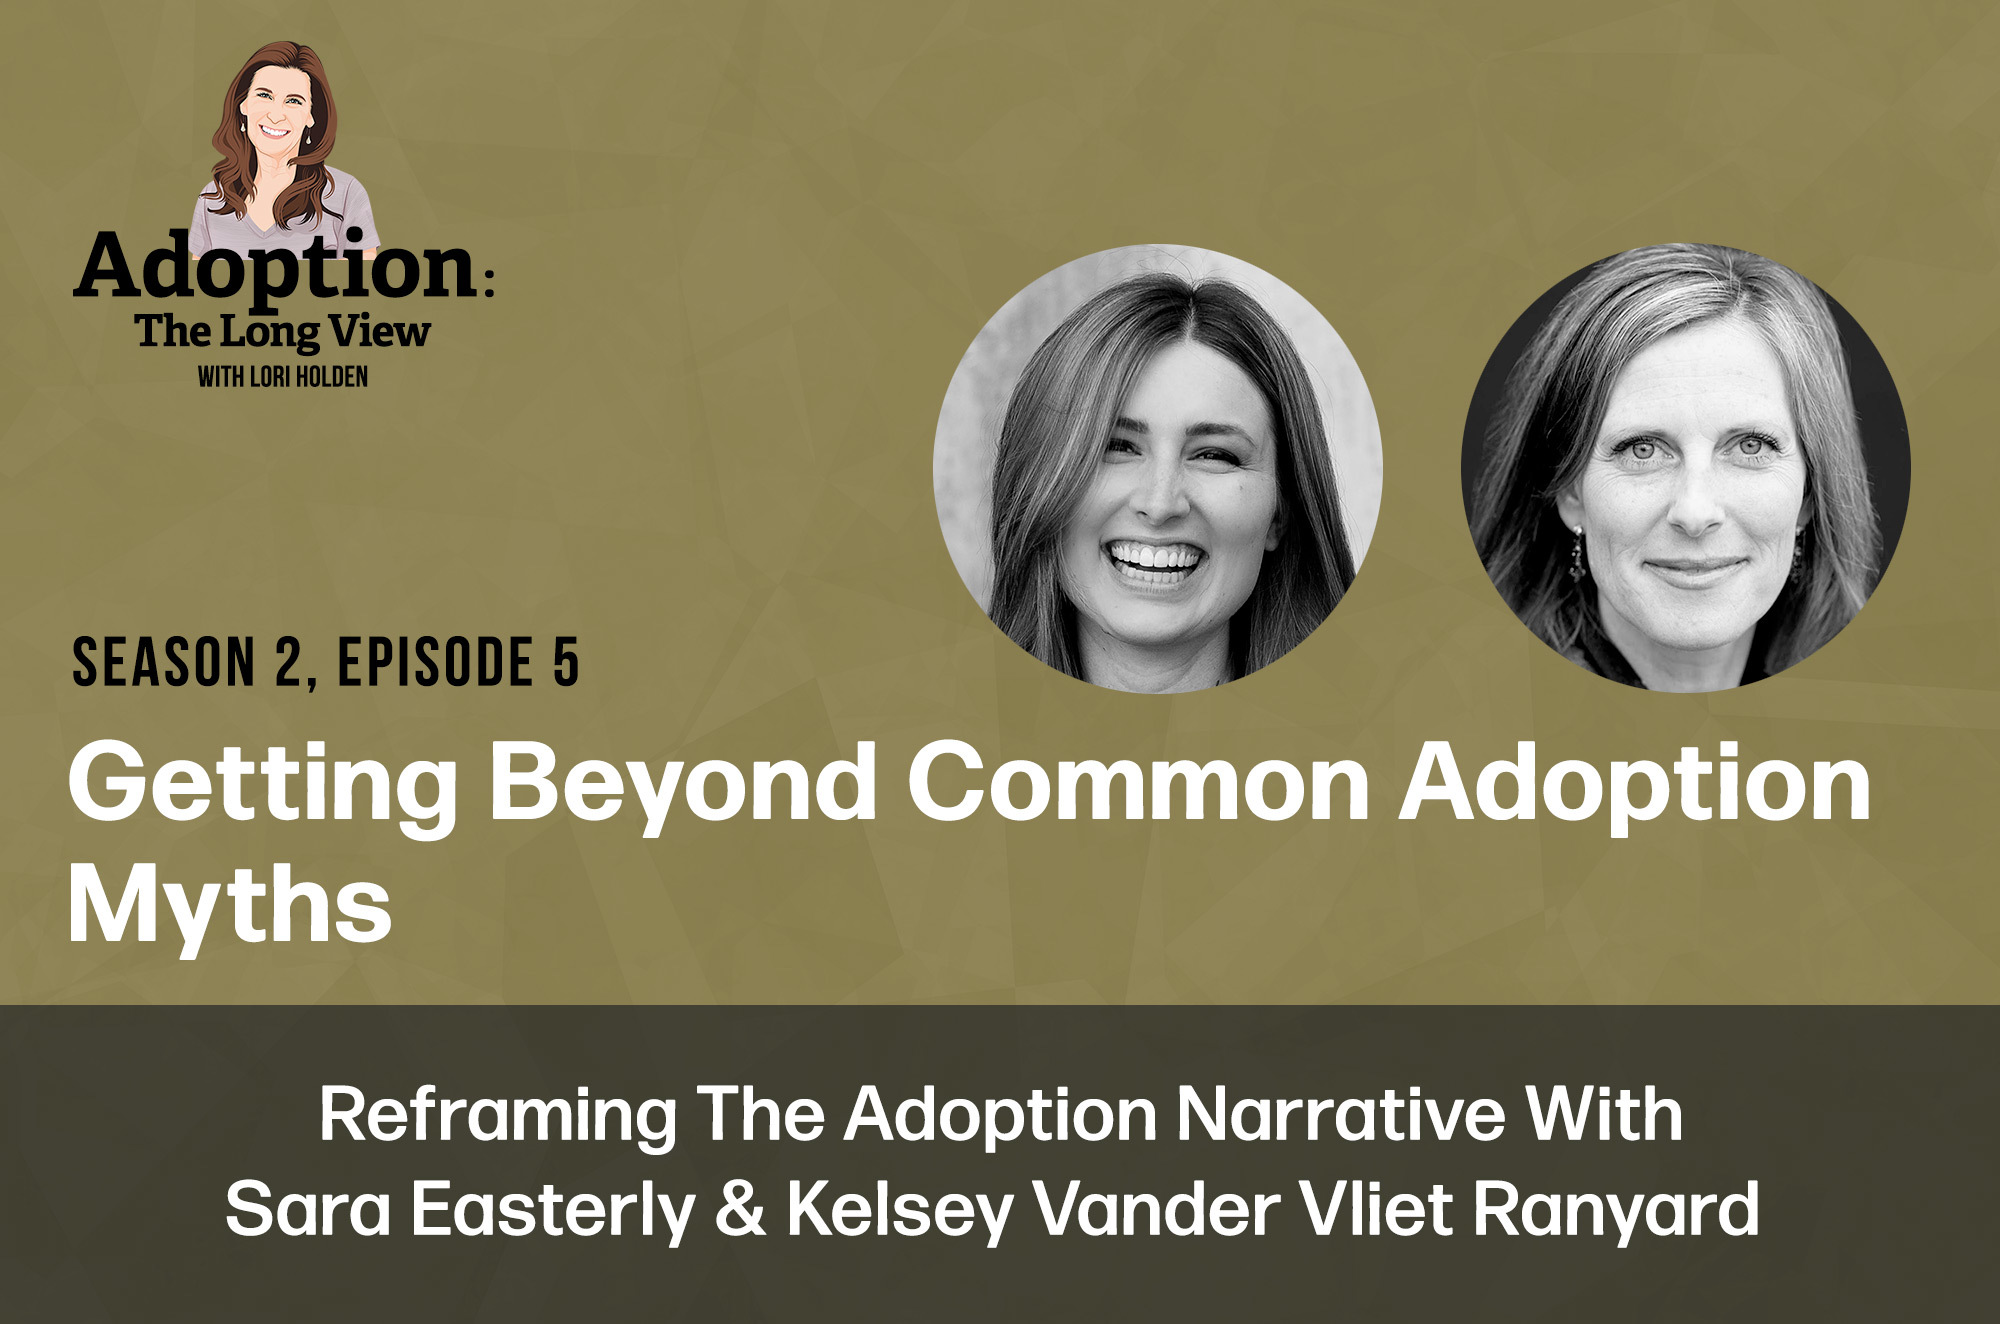 Adoption the long view ep5